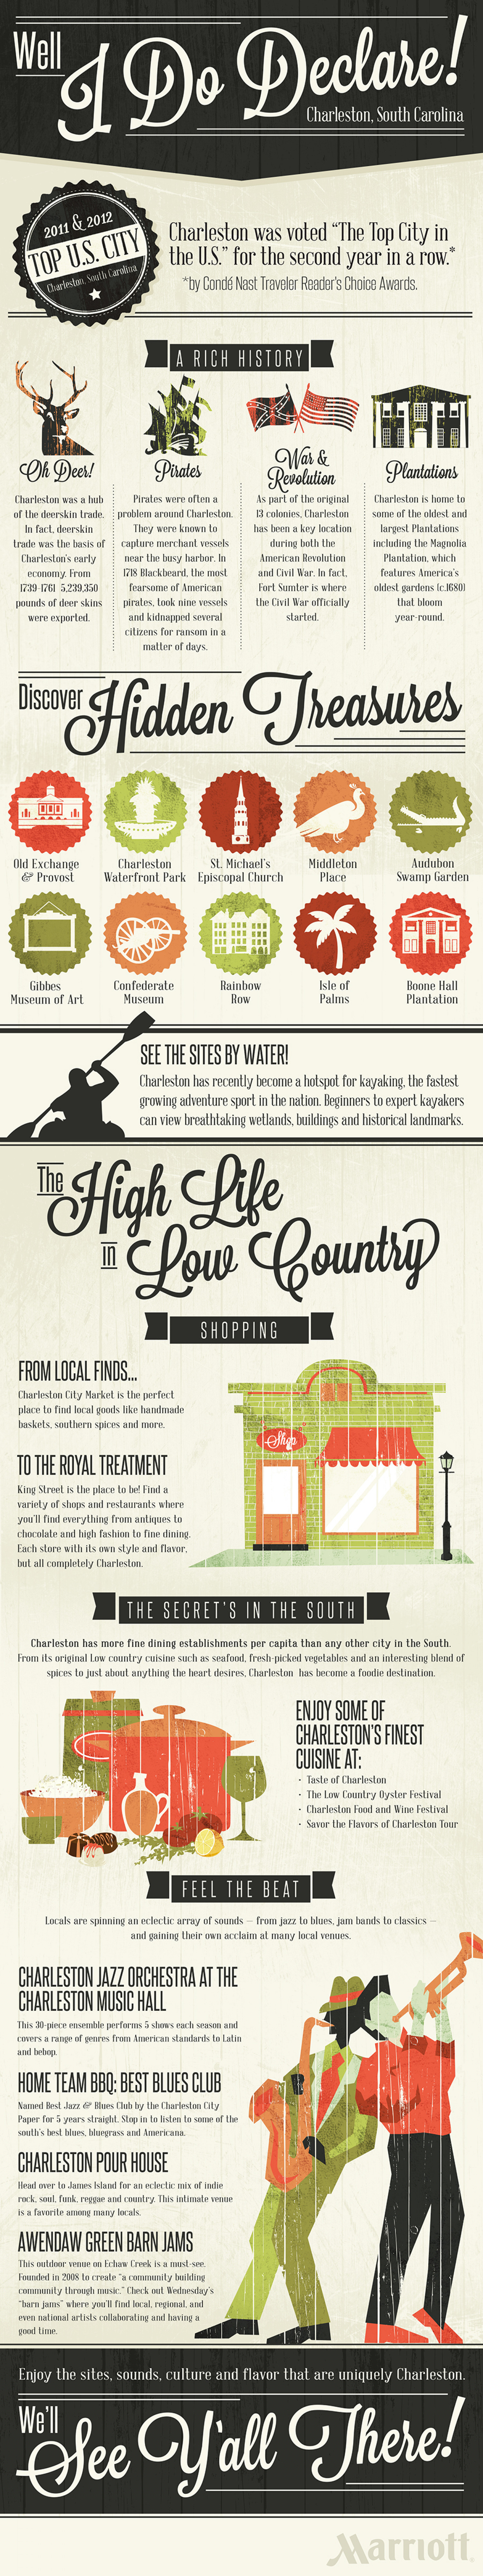 I Do Declare! A Guide To Charleston Infographic